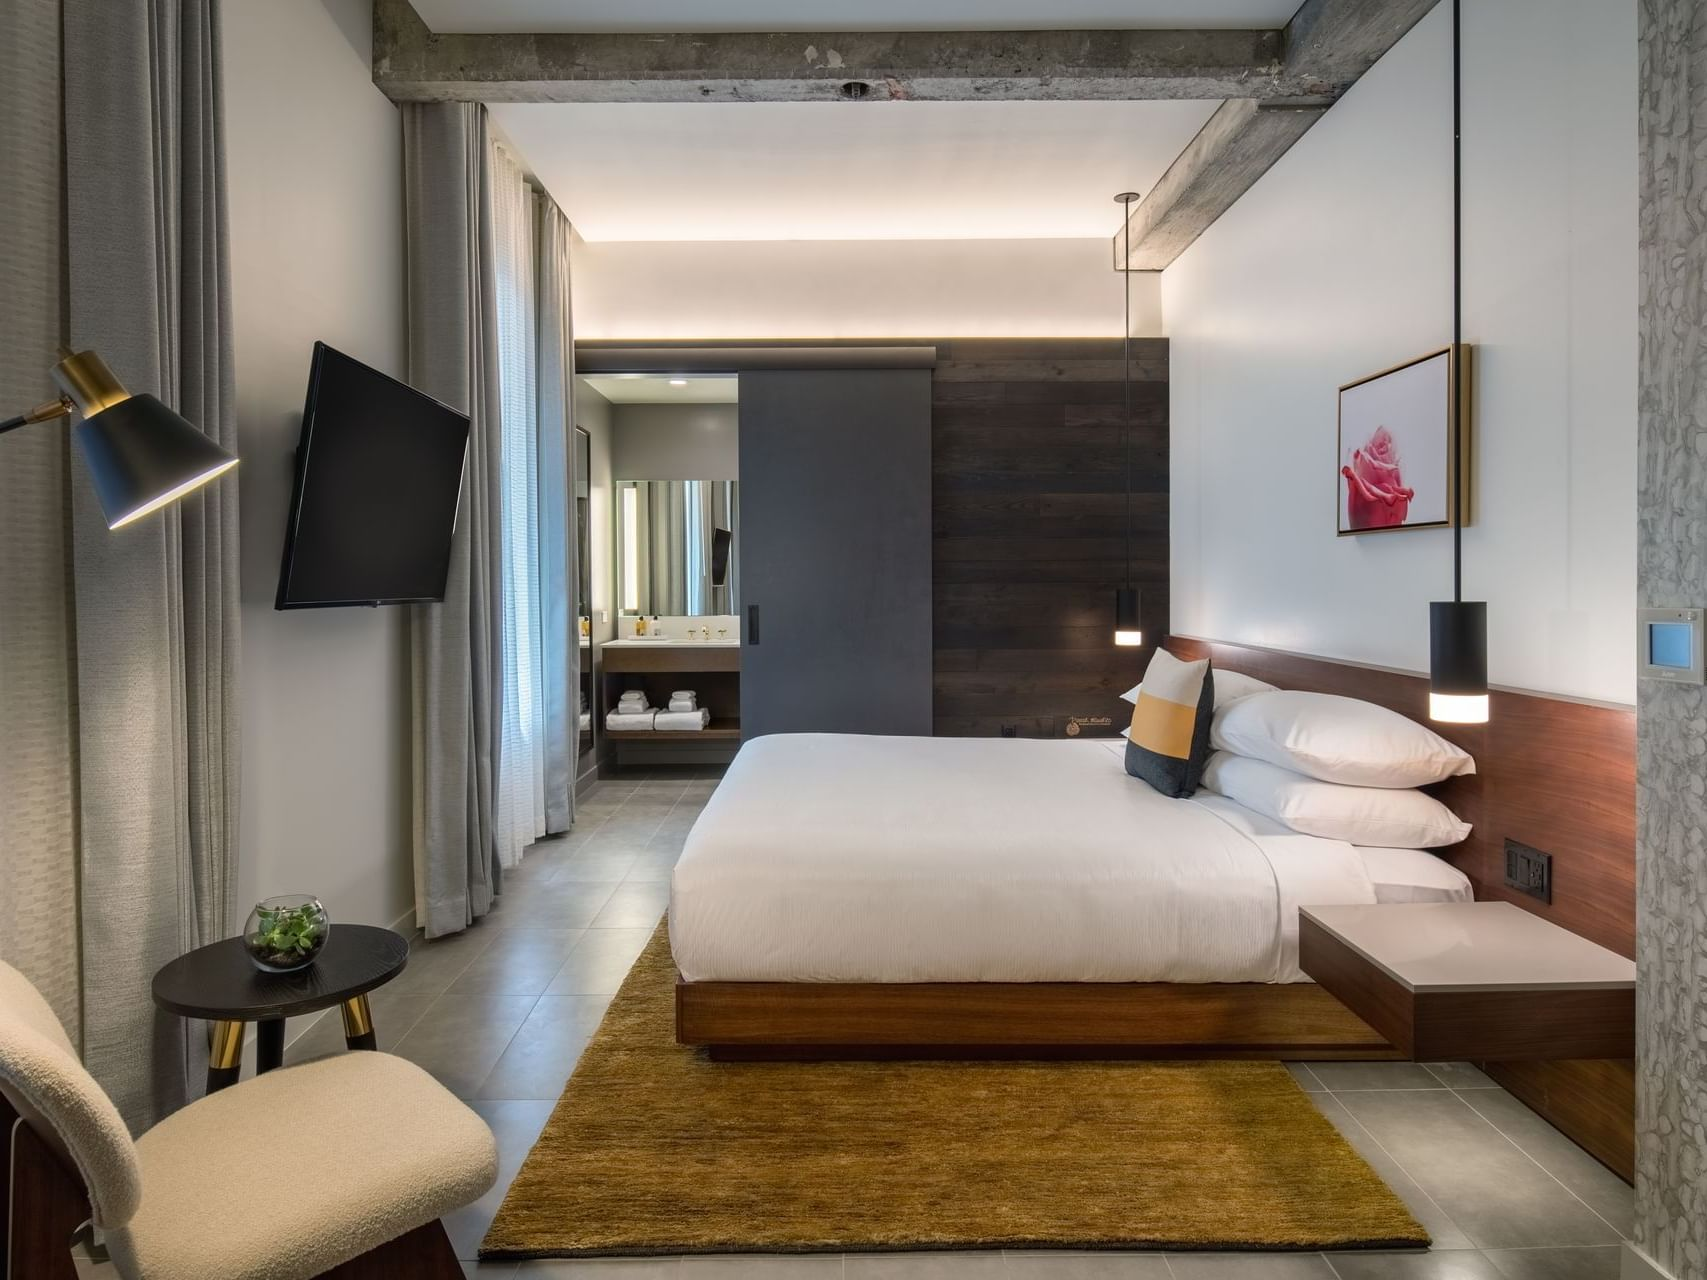 Hi-Lo hotel room with bed and television mounted on wall